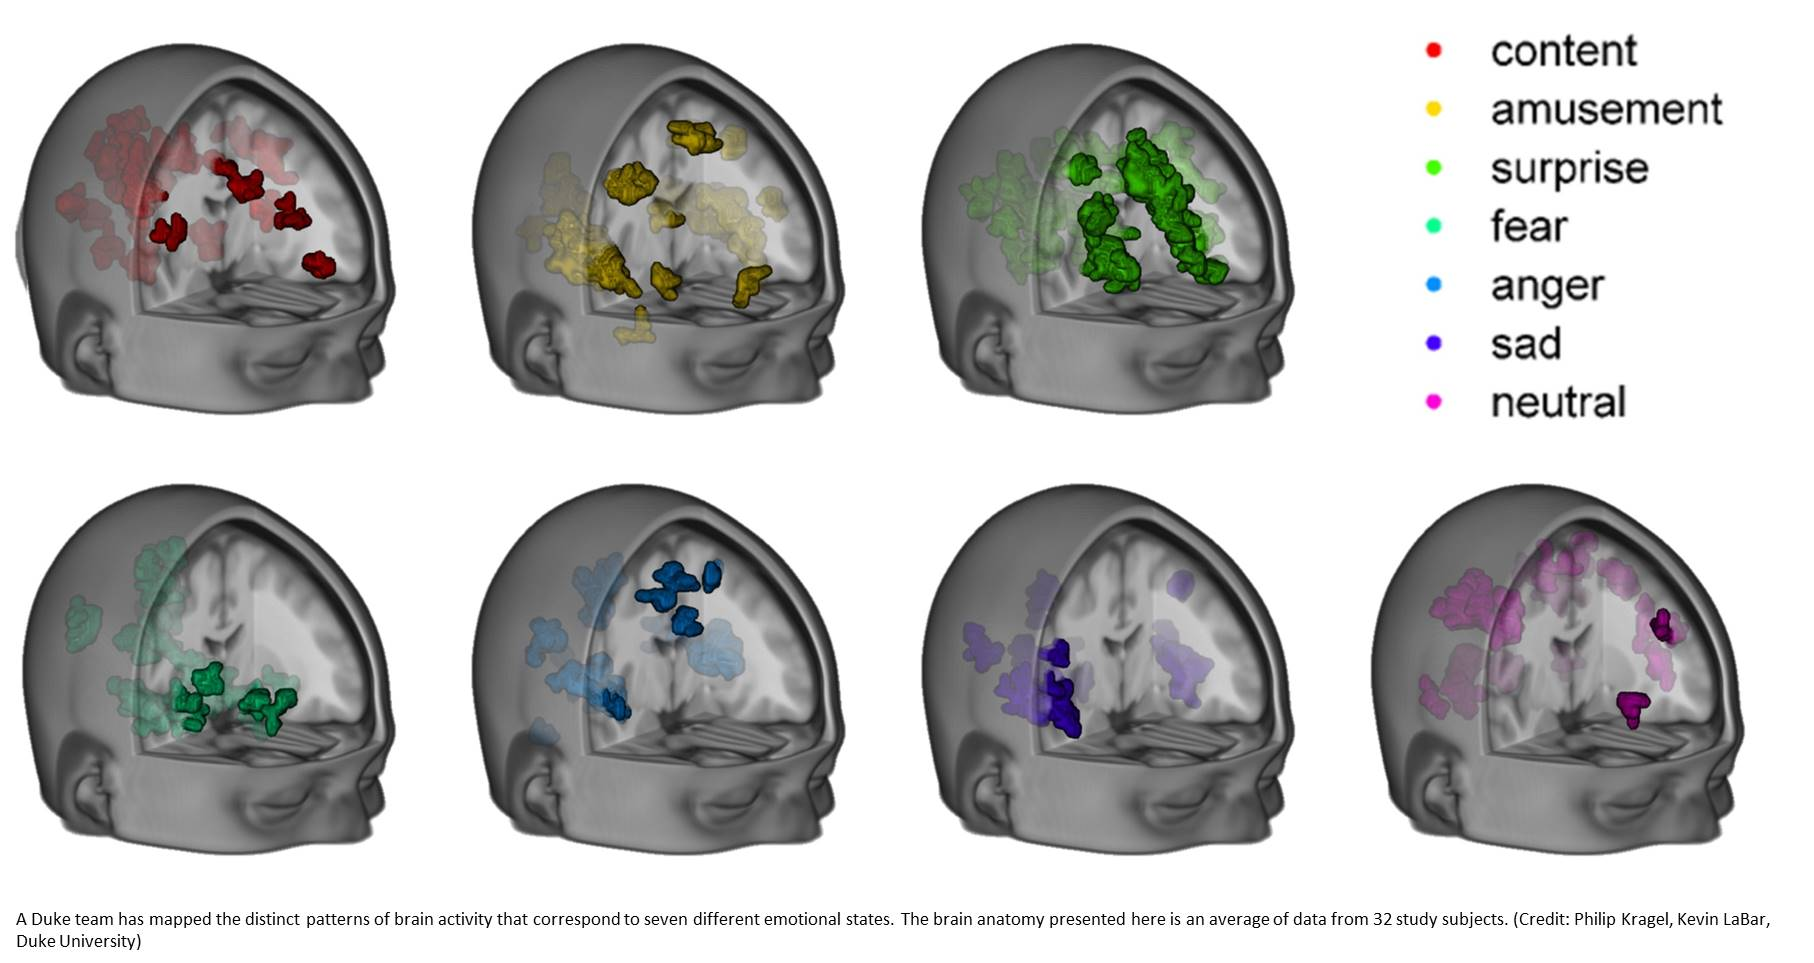 MRI SCANNER SEES EMOTIONS FLICKERING ACROSS AN IDLE MIND